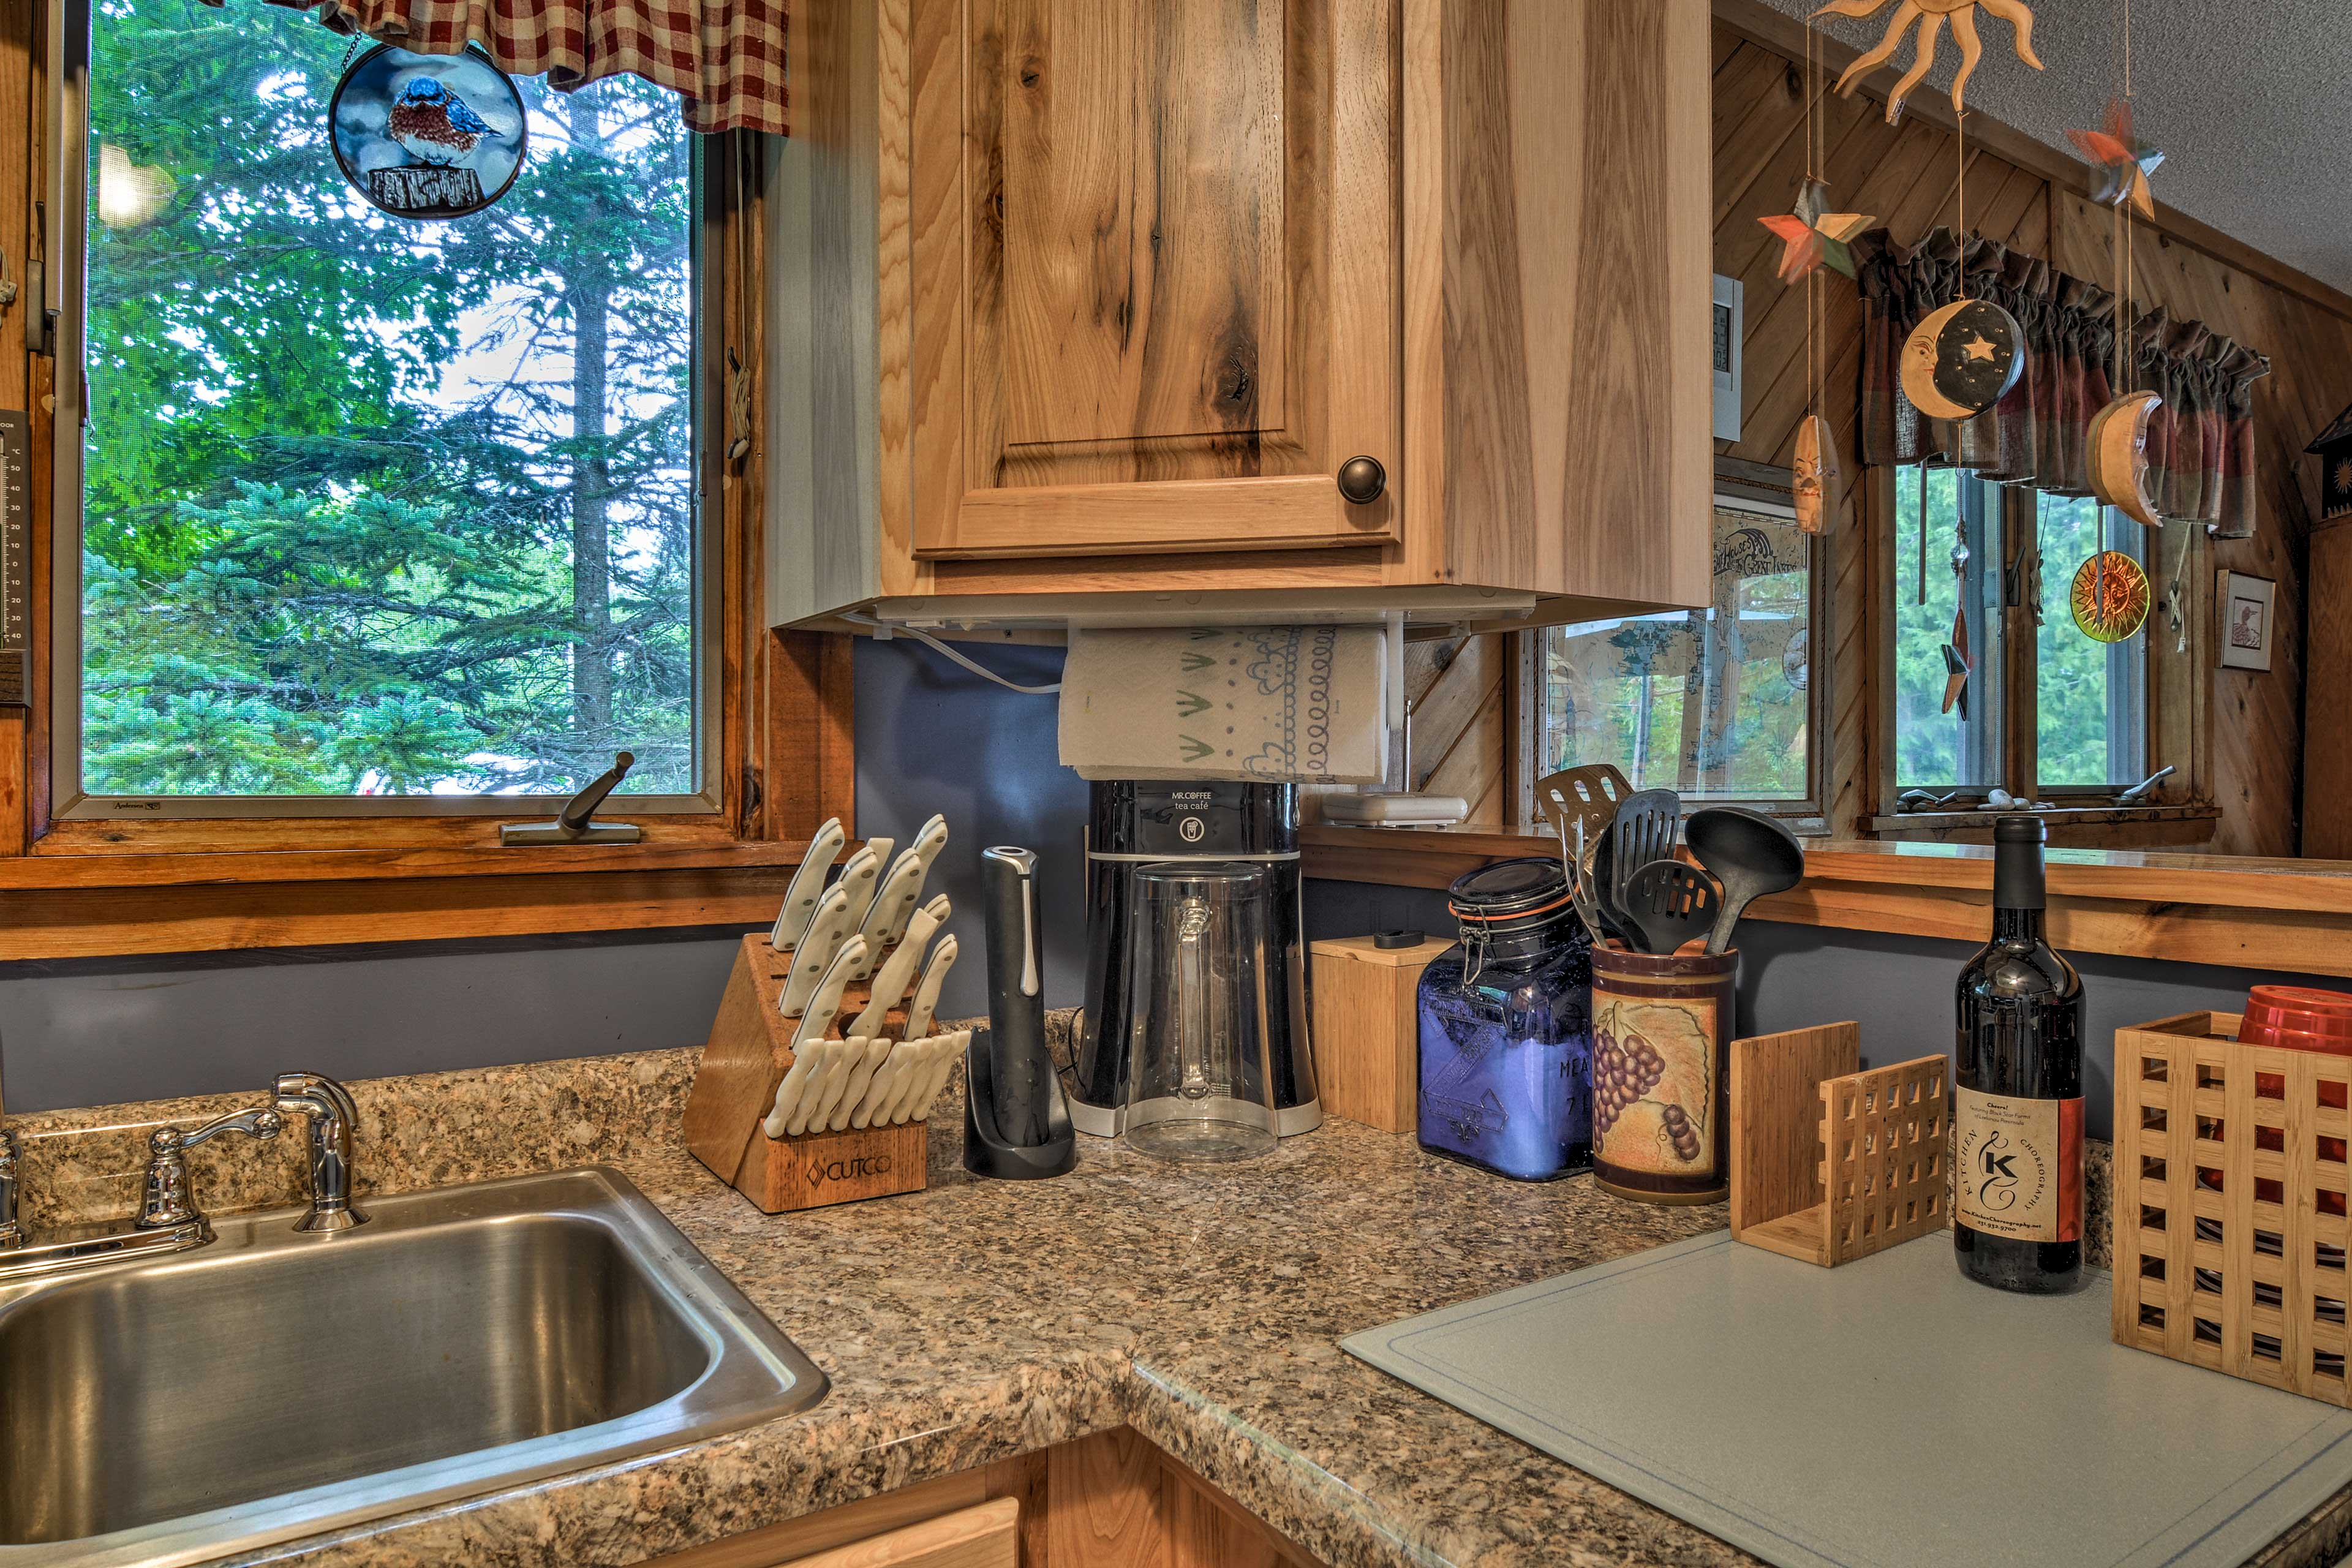 You'll find everything you need along the counters or in the cabinets.